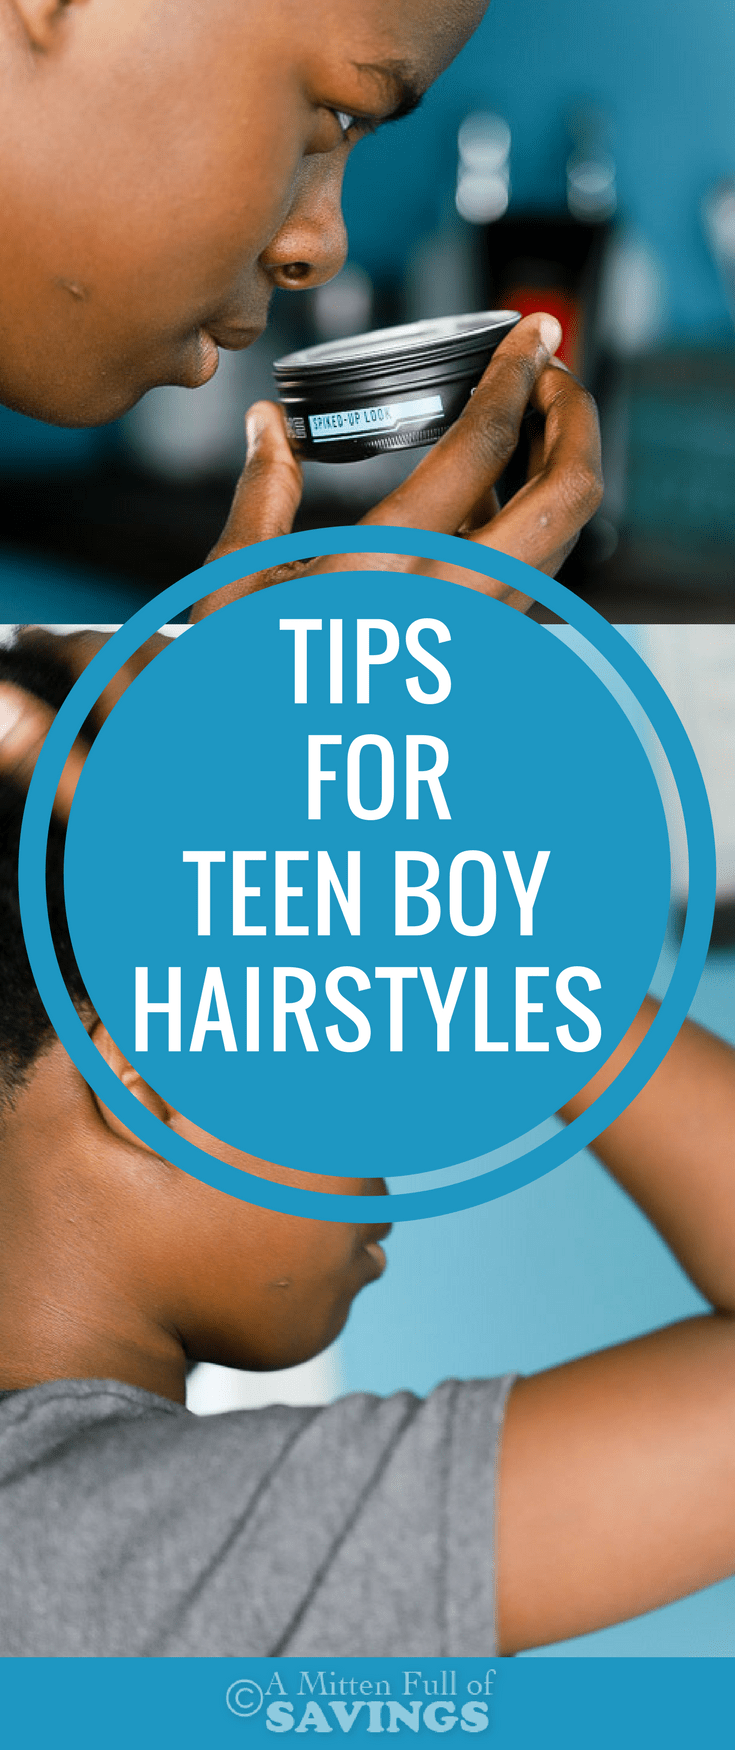 Teen boys are totally into their hair! I'm sharing some of my mom tips on dealing with teen boy hairstyles.